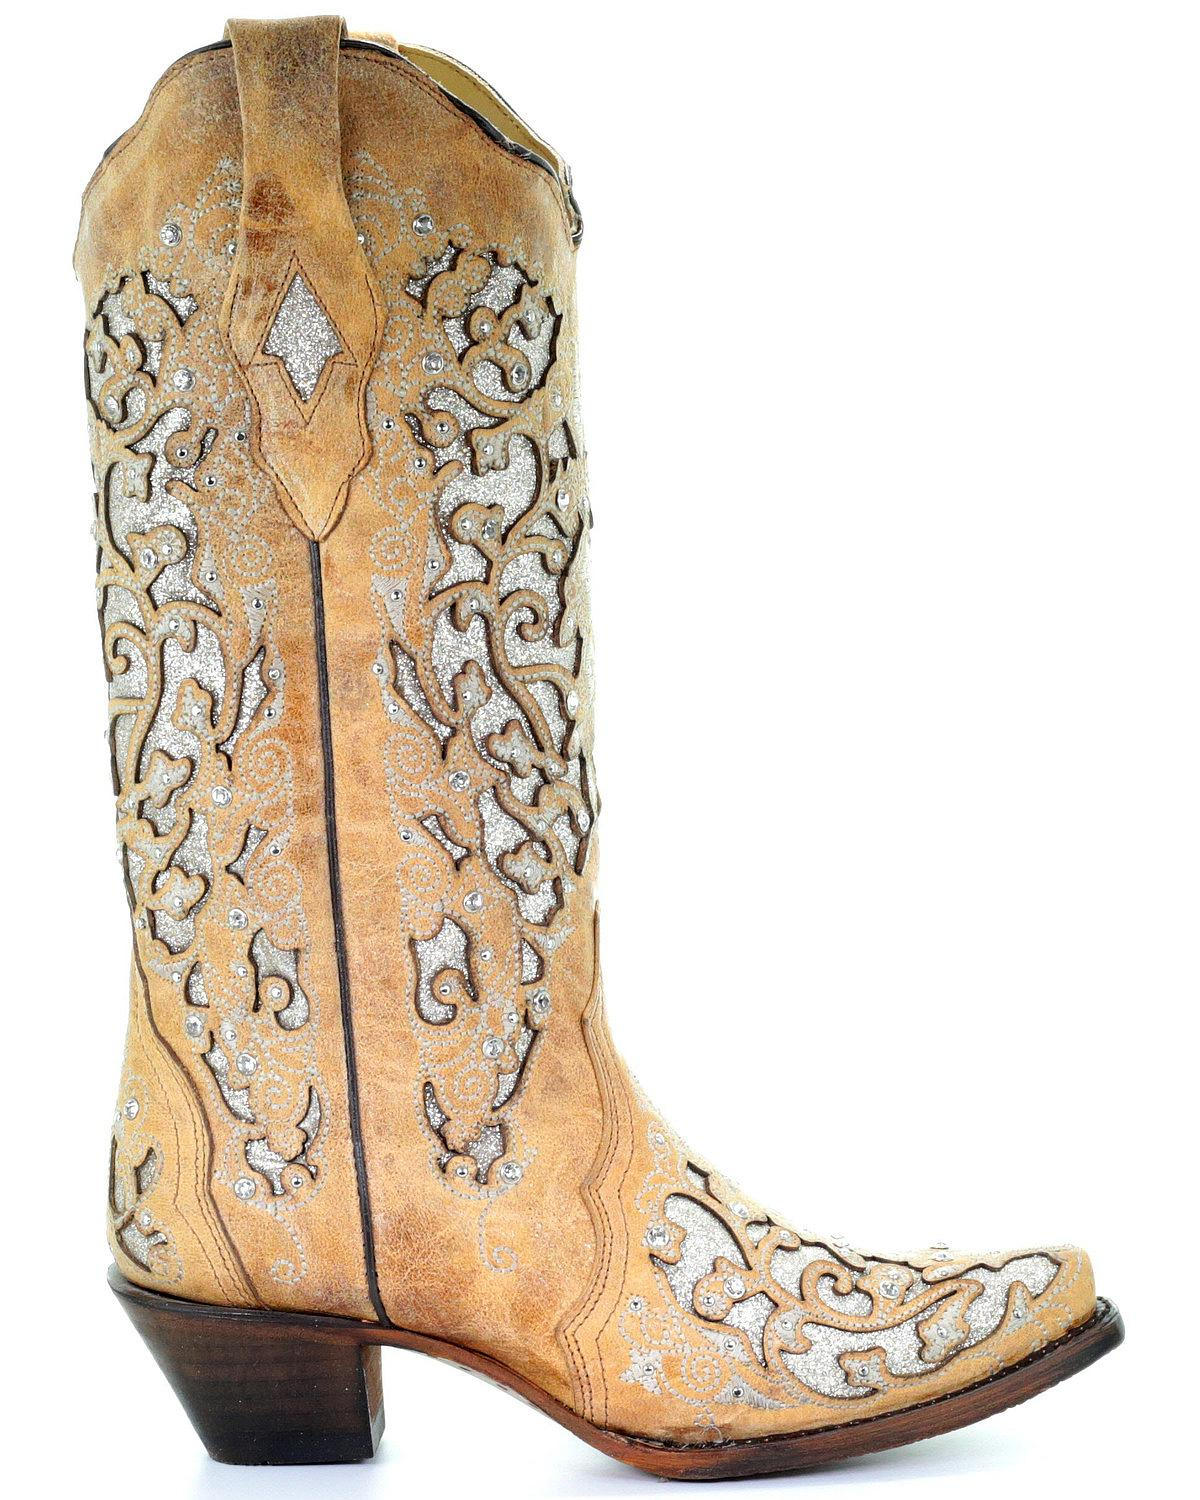 544b6a3ab8b4 Corral Women's Glitter Floral Inlay Western Boot - Snip Toe - A3670 ...